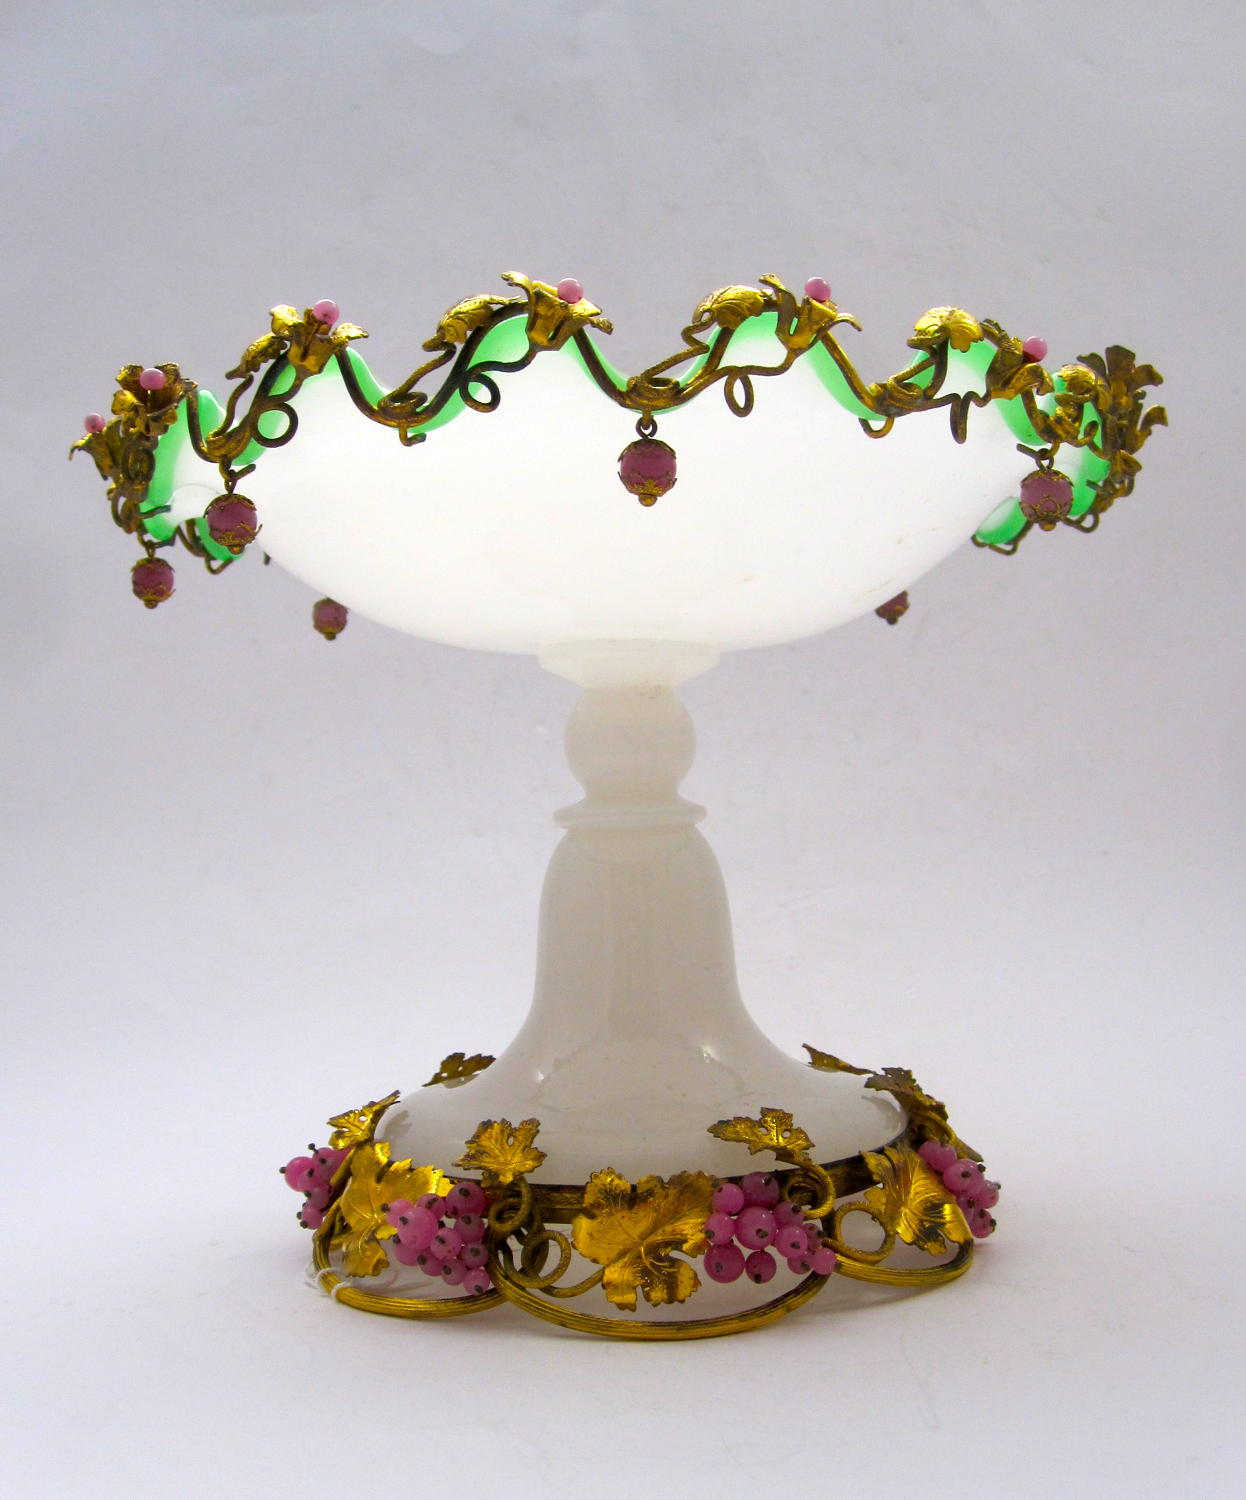 Antique French Opaline Glass Tazza